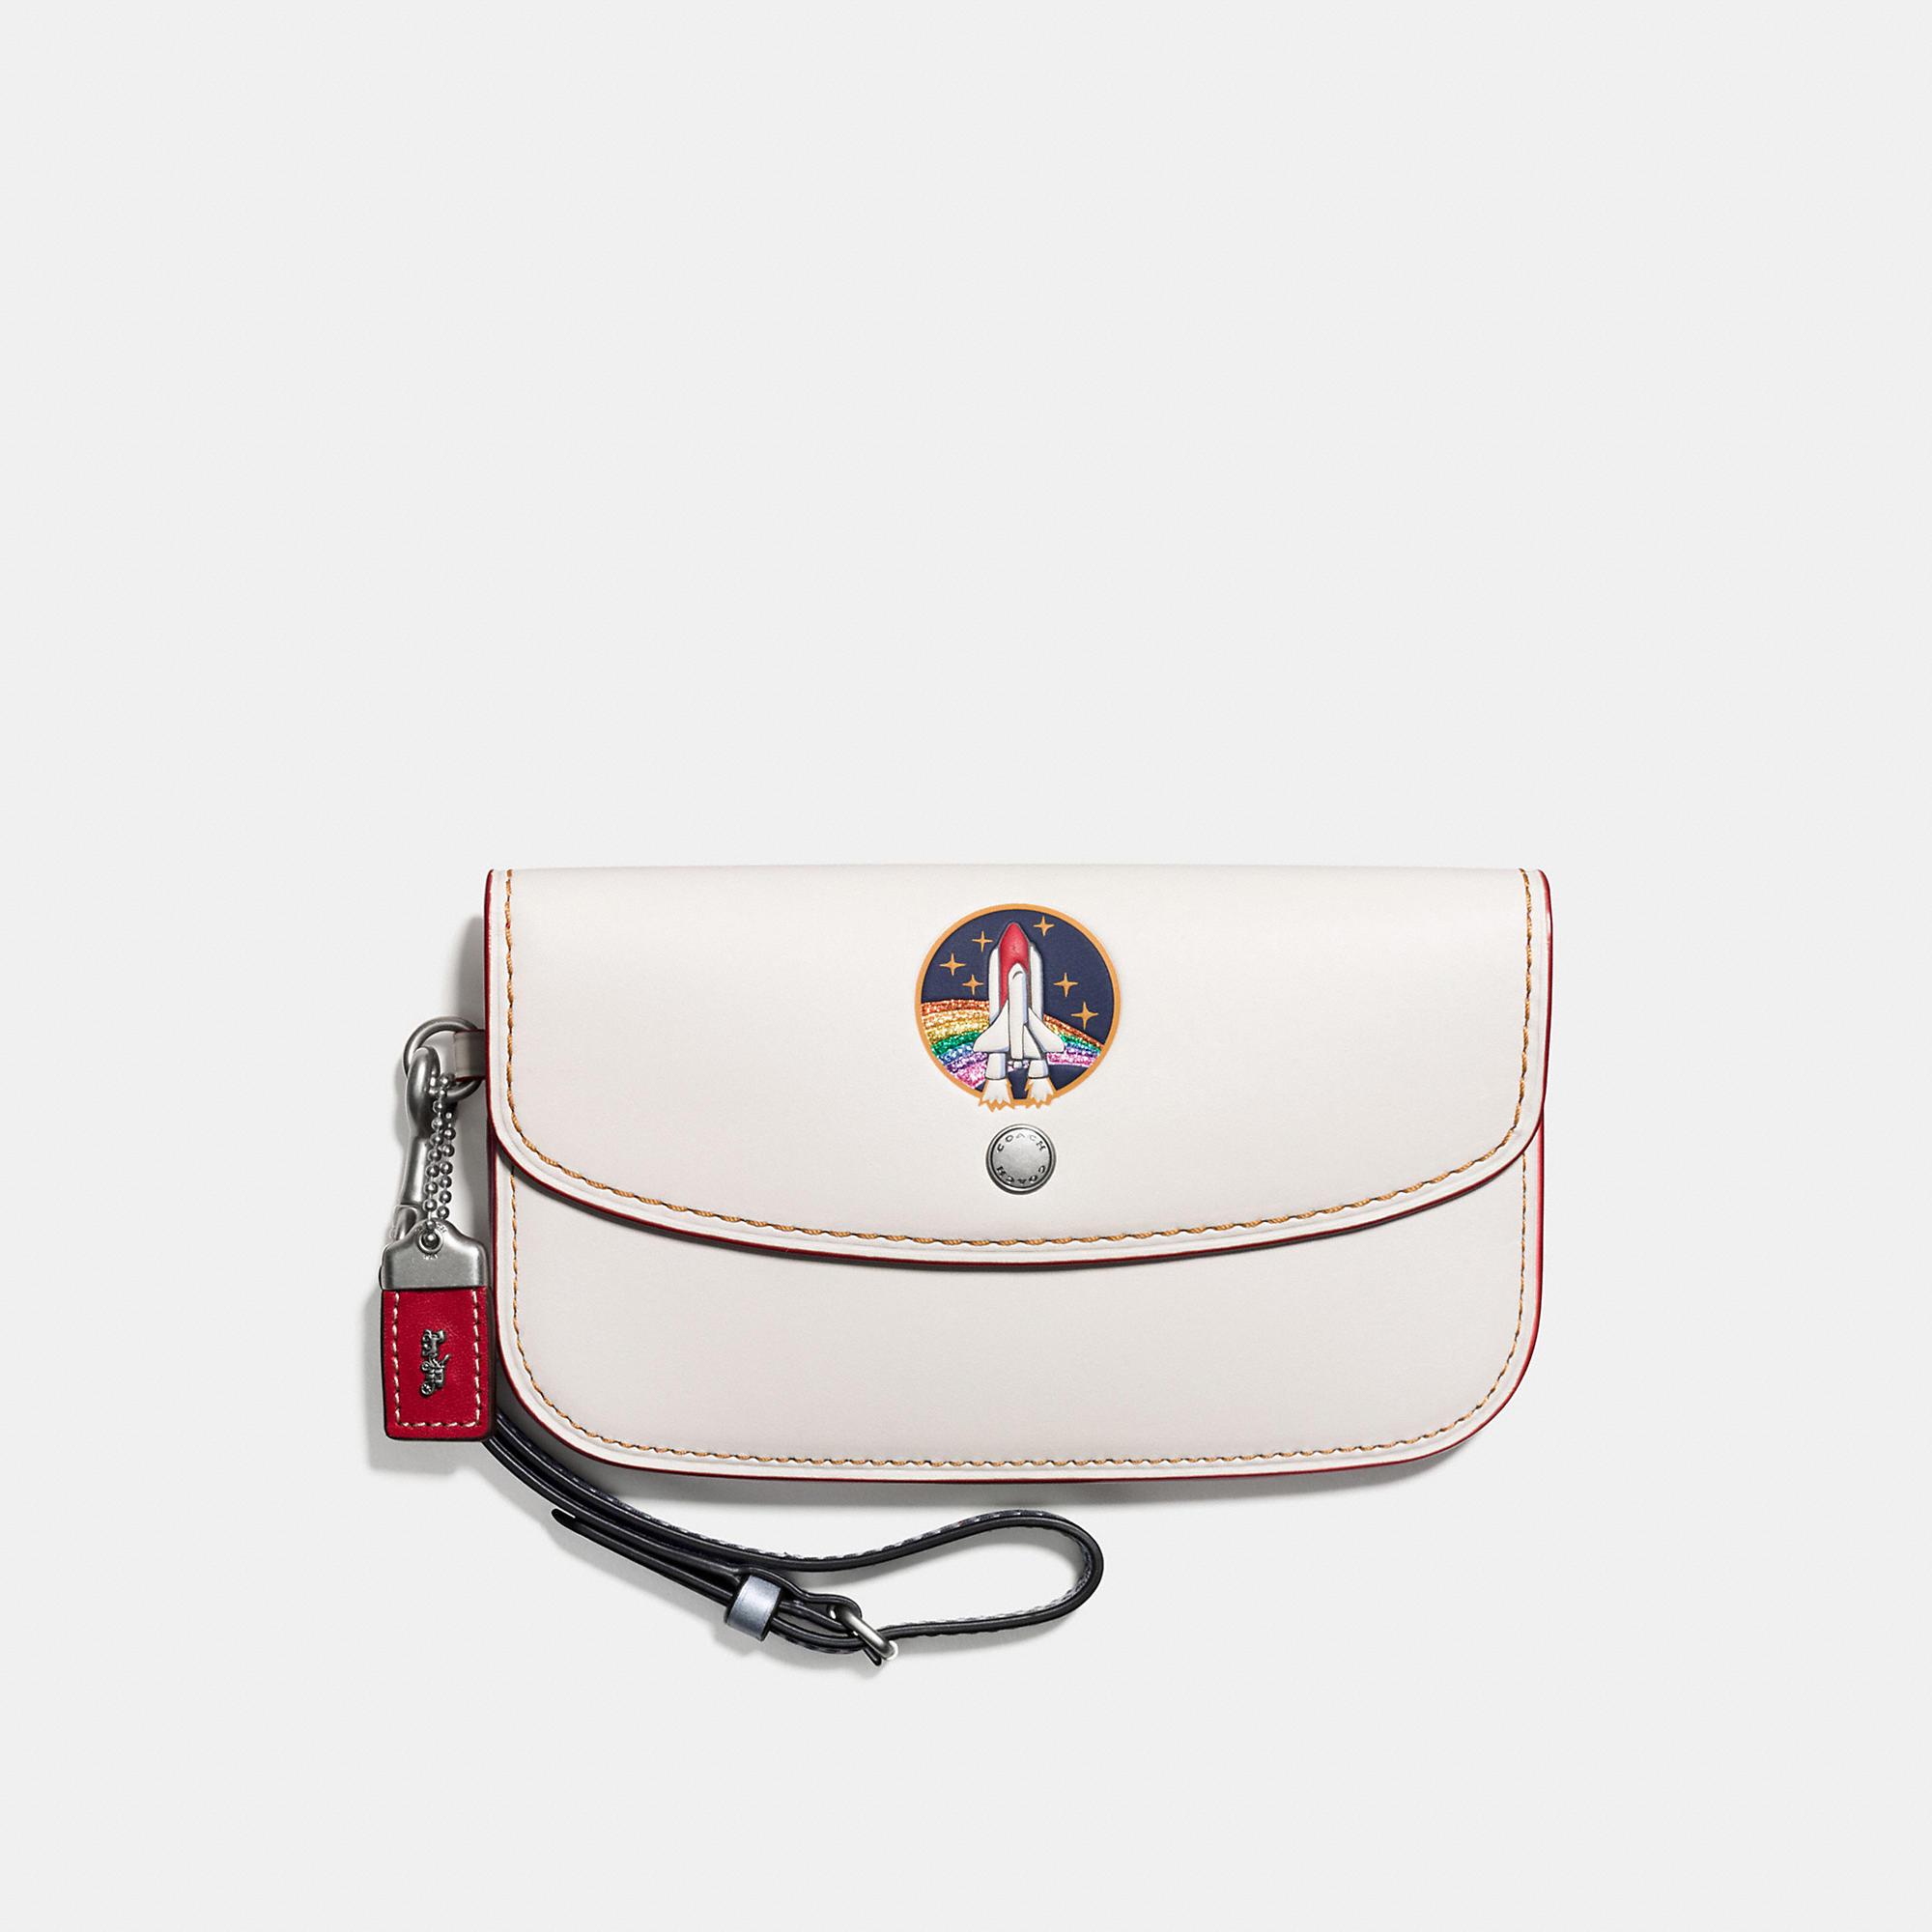 Coach Clutch In Glovetanned Leather With Embossed Rocket Shuttle